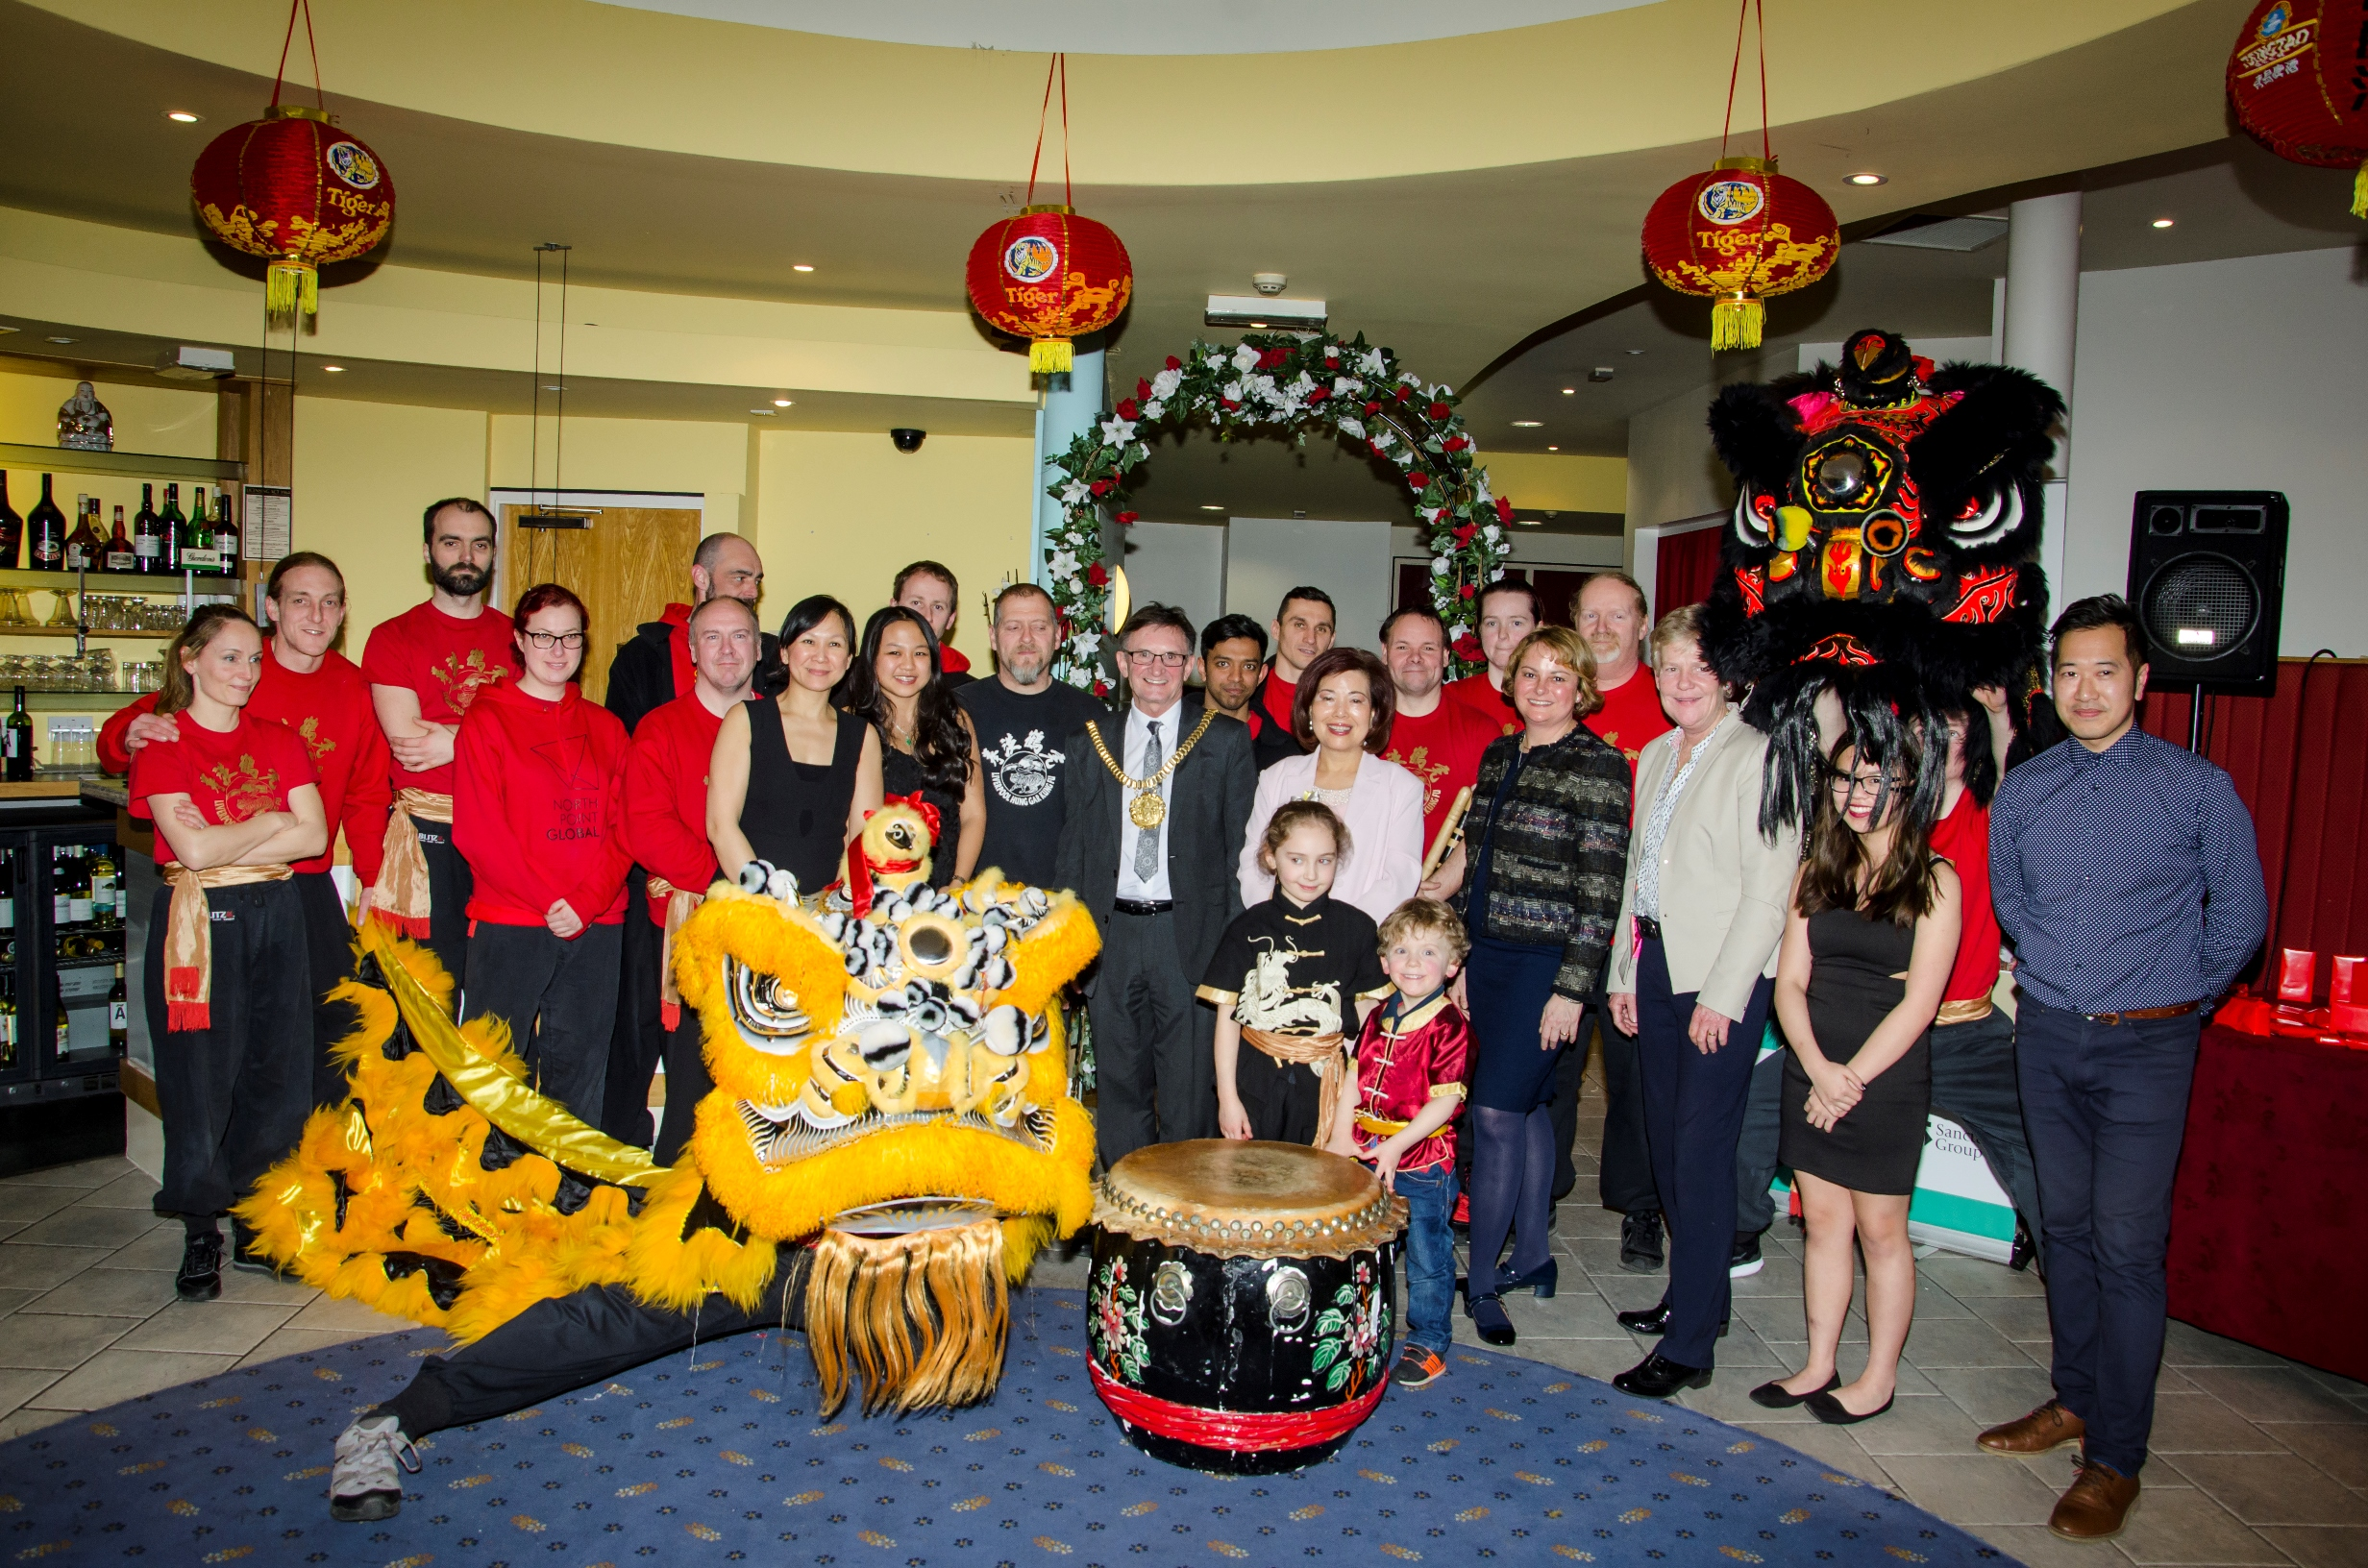 Lord Mayor of Liverpool, Cllr Tony Concepcion, with representatives of HPBC, the Chung Ku restaurant and Liverpool Hung Gar Kung Fu school.